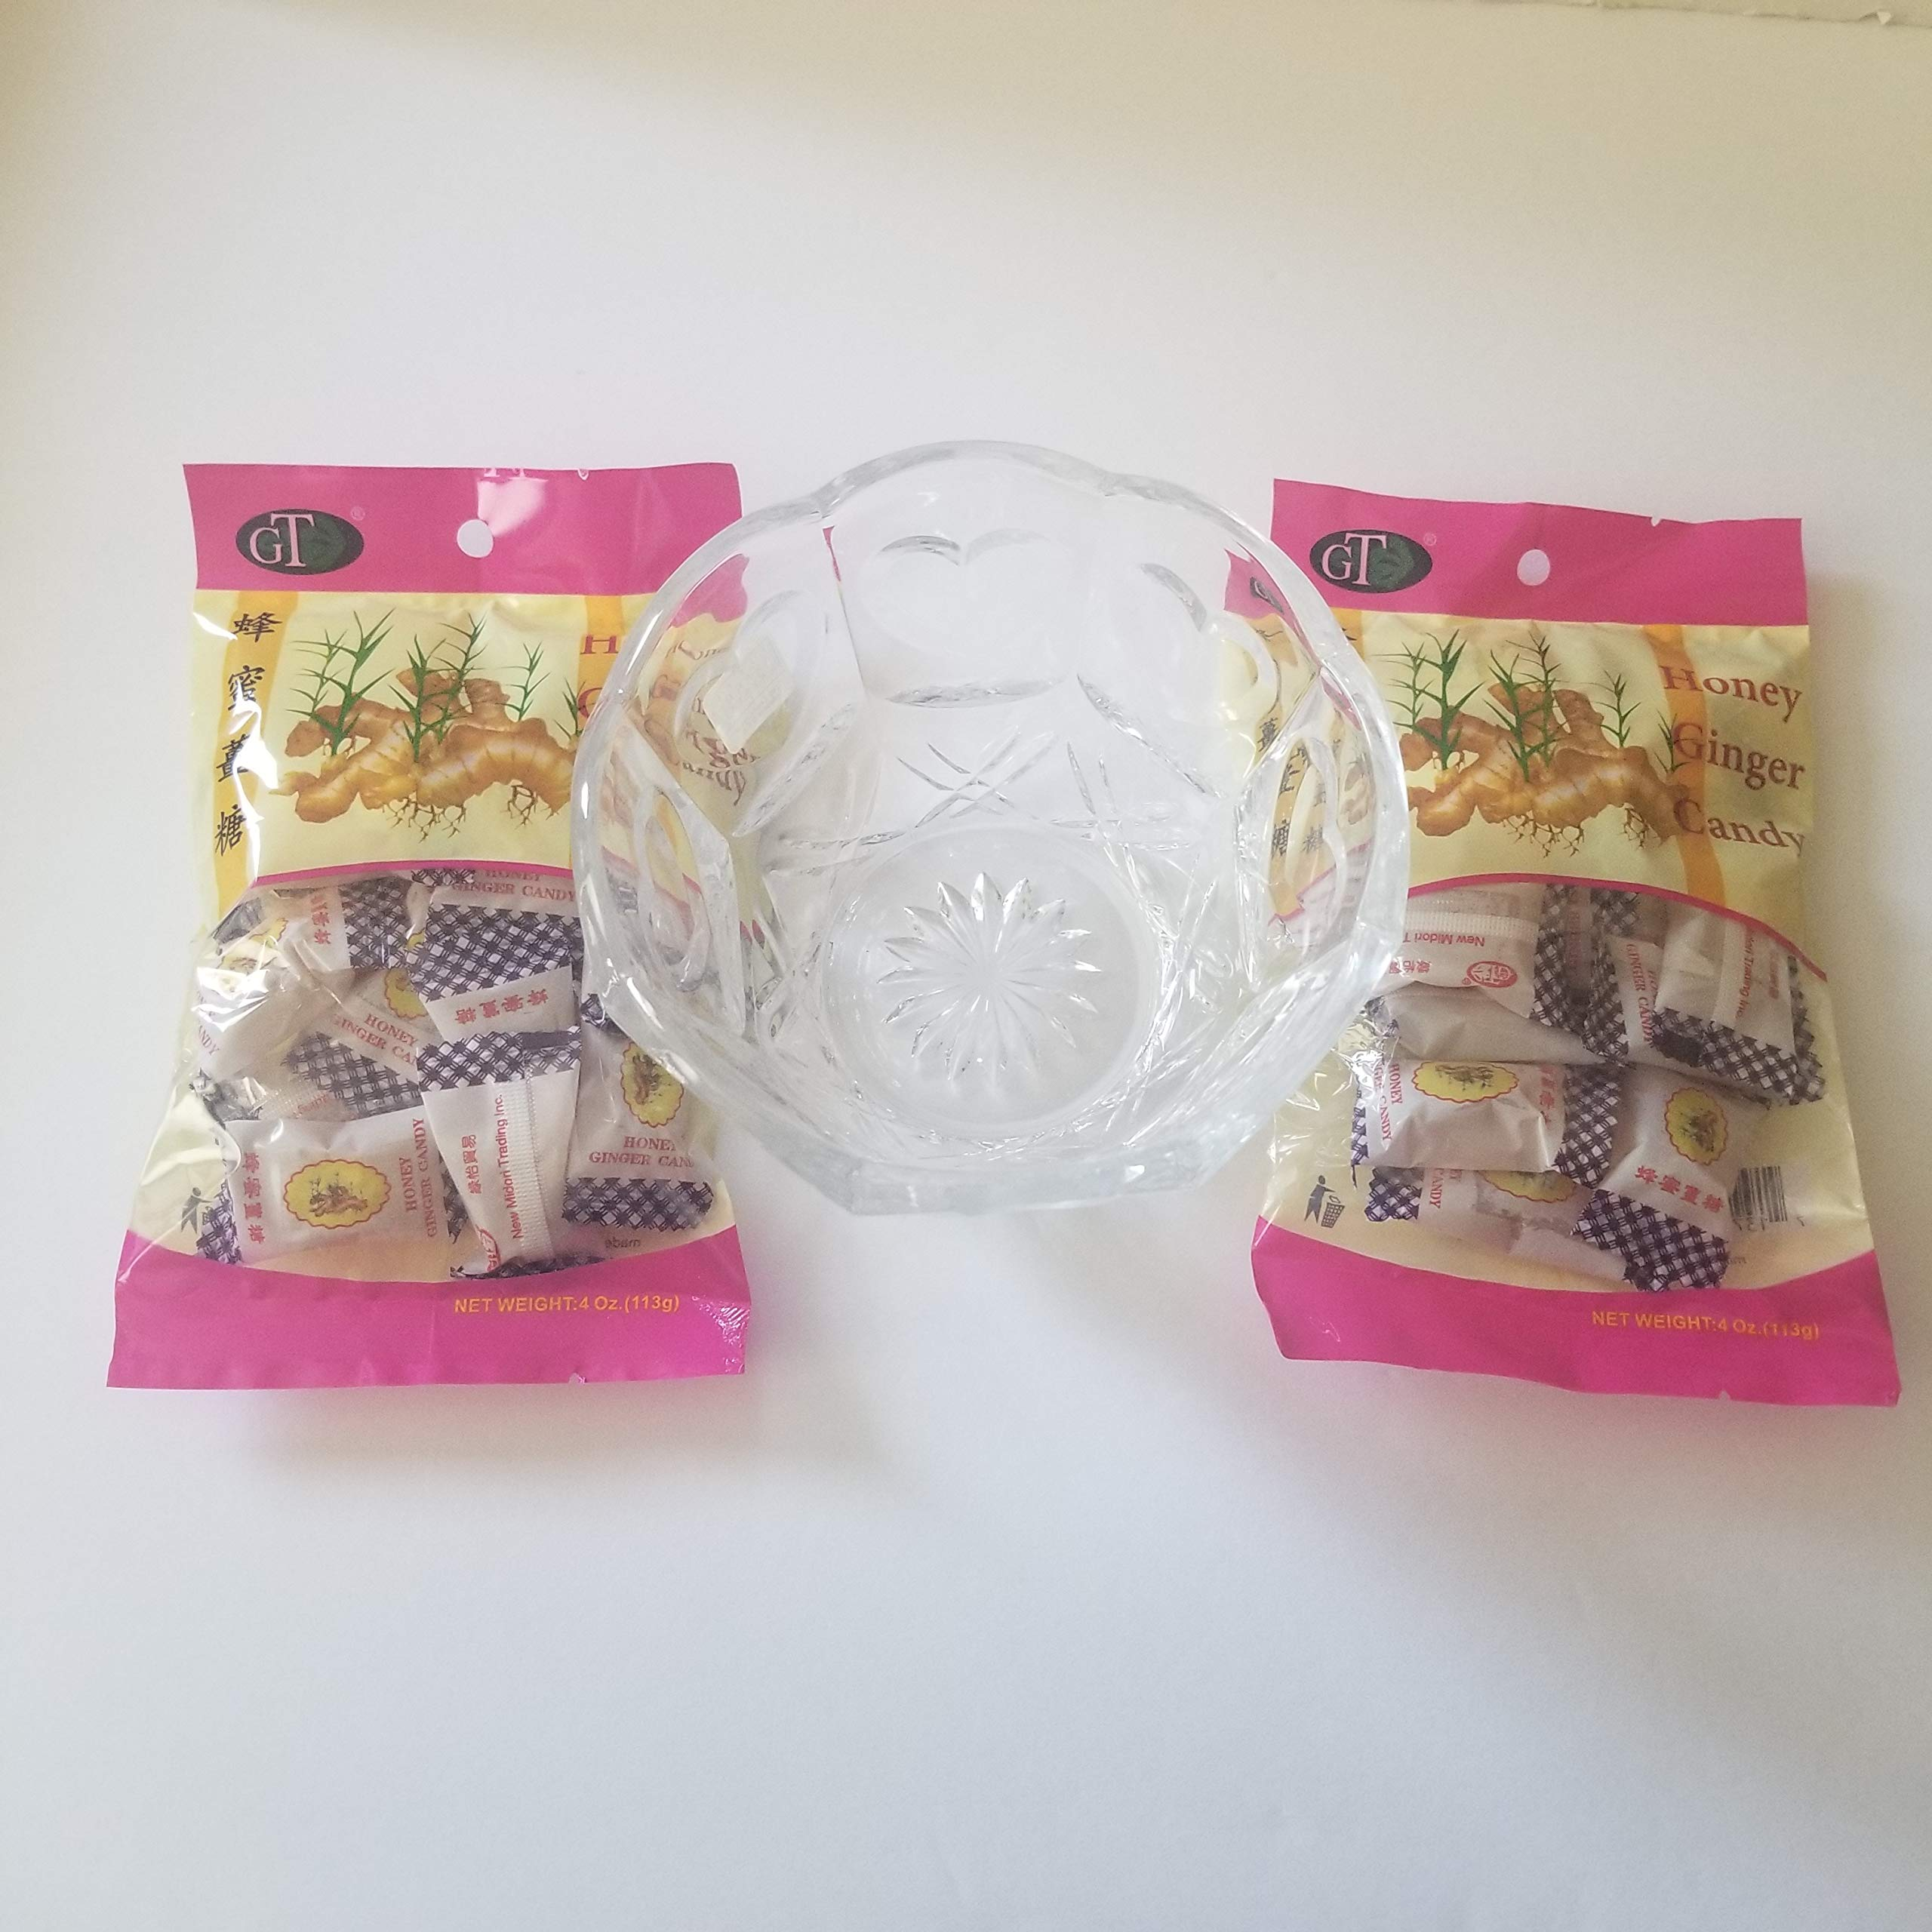 Honey Ginger Soft Candy! 2 Packs 4 Oz Each! Beautiful Lead Crystal Candy Dish Included! This Honey Ginger Soft Candy Is A Wholesome Treat! Has Spicy Kick Of Ginger And The Subtle Sweetness Of Honey!